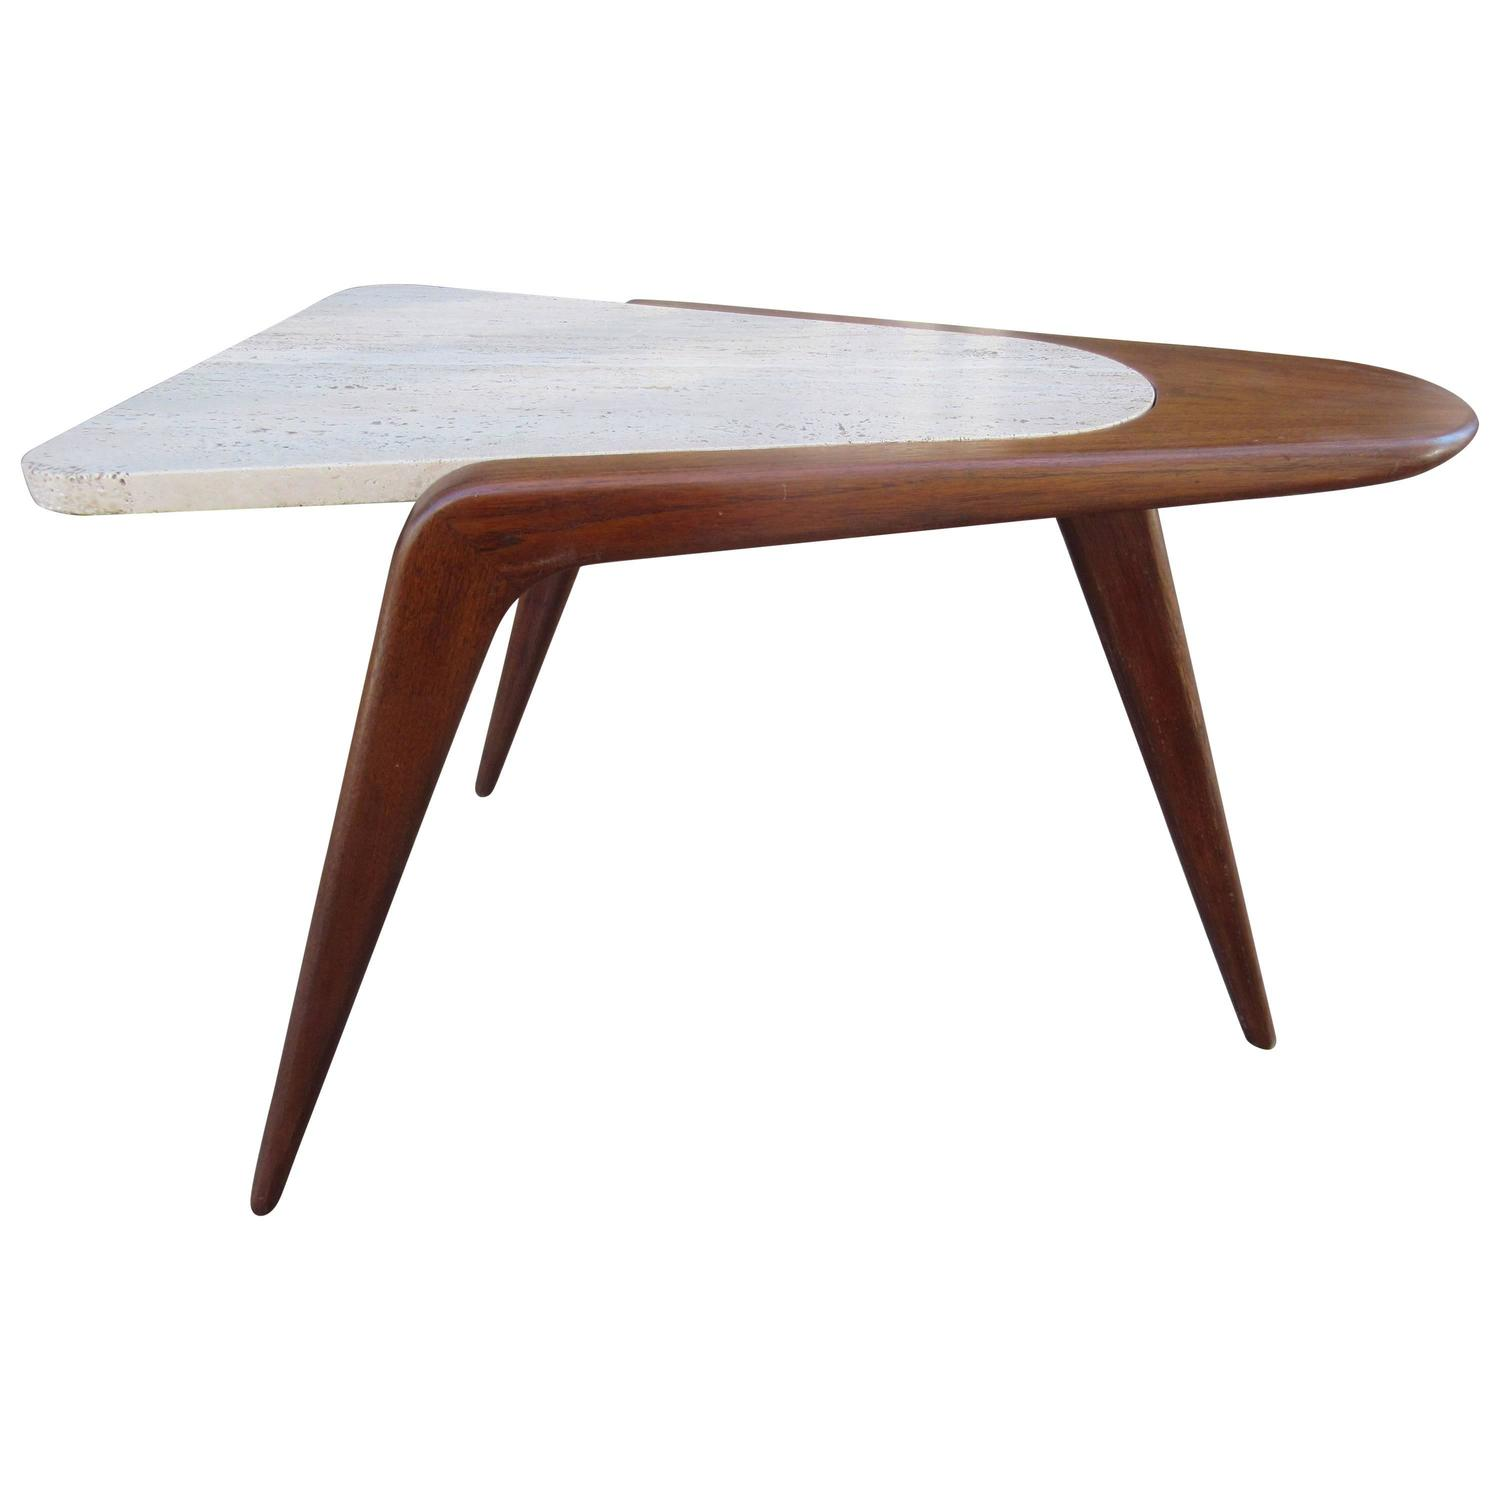 Vladimir Kagan Tripod Terrazzo and Walnut Side Table at 1stdibs